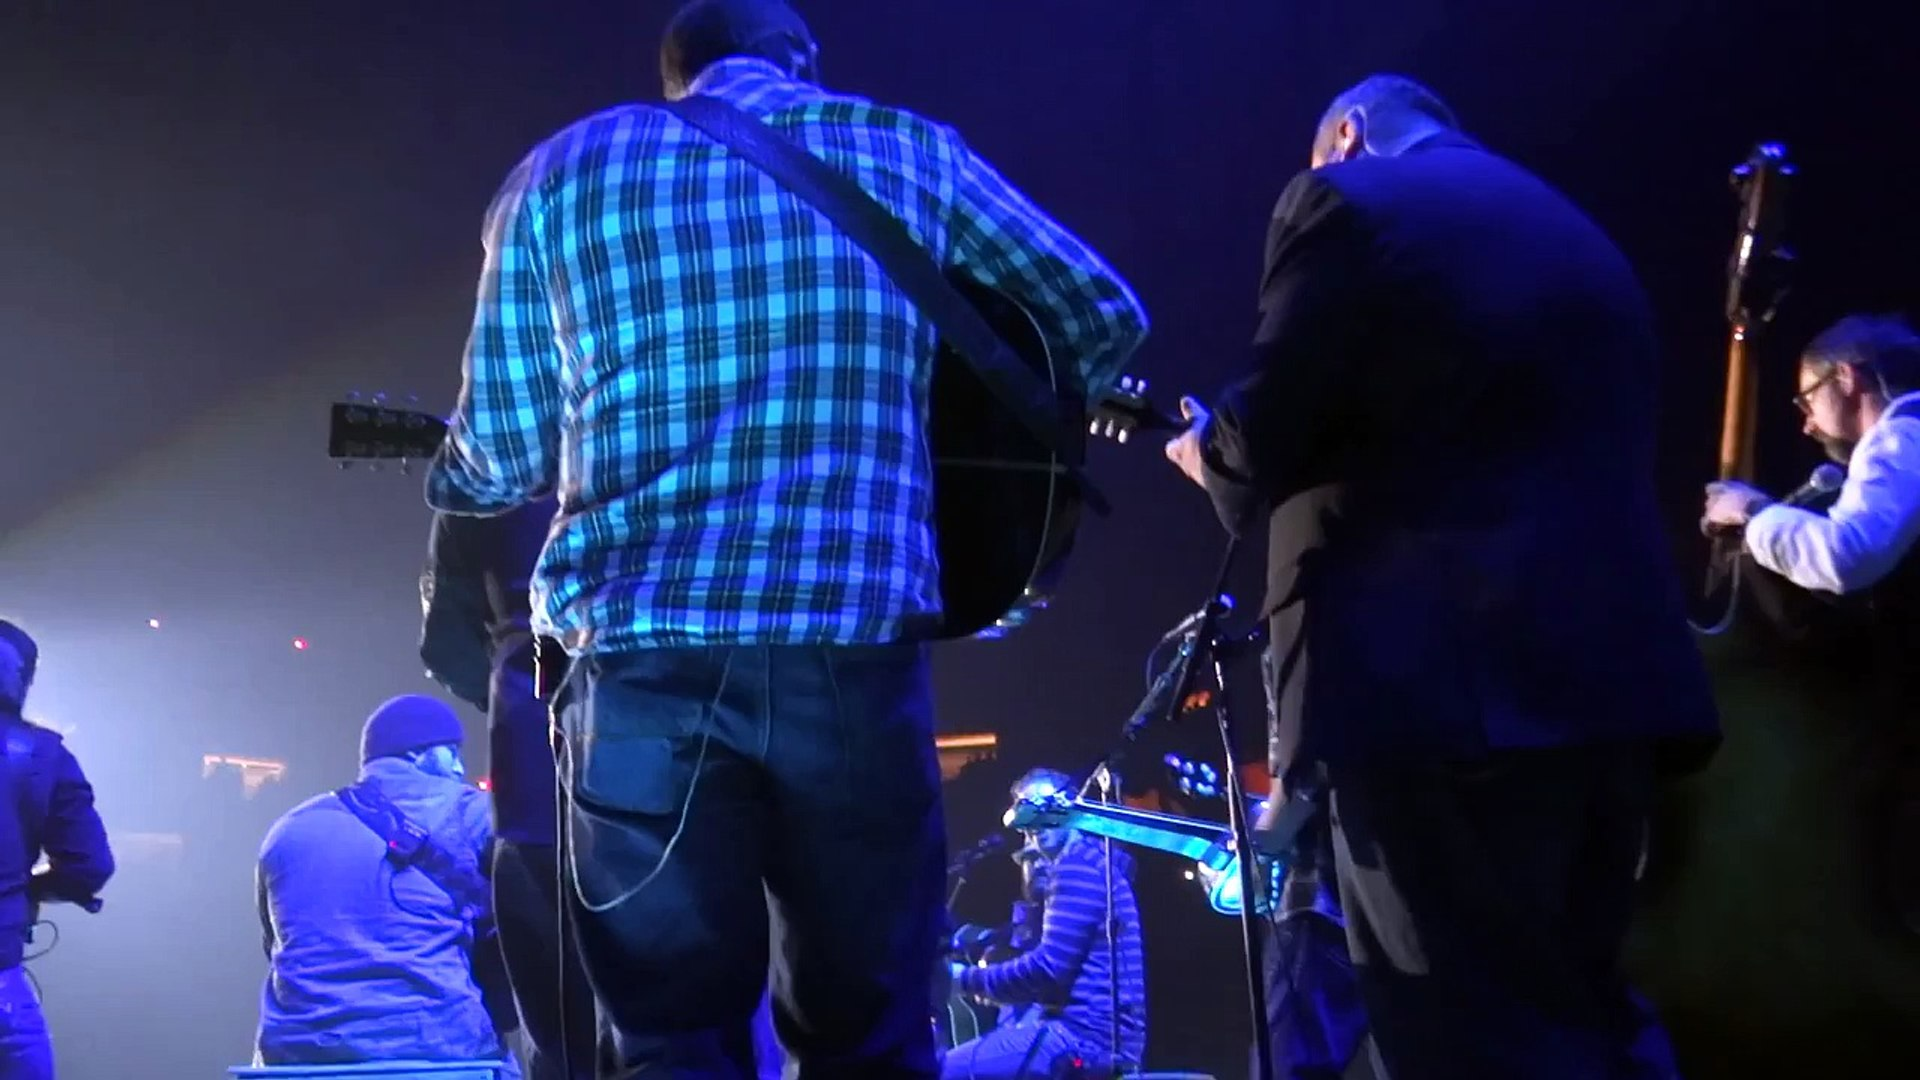 2013-01-27, Zac Brown Band, Knoxville (TN), Lay Me Down feat Balsam Range